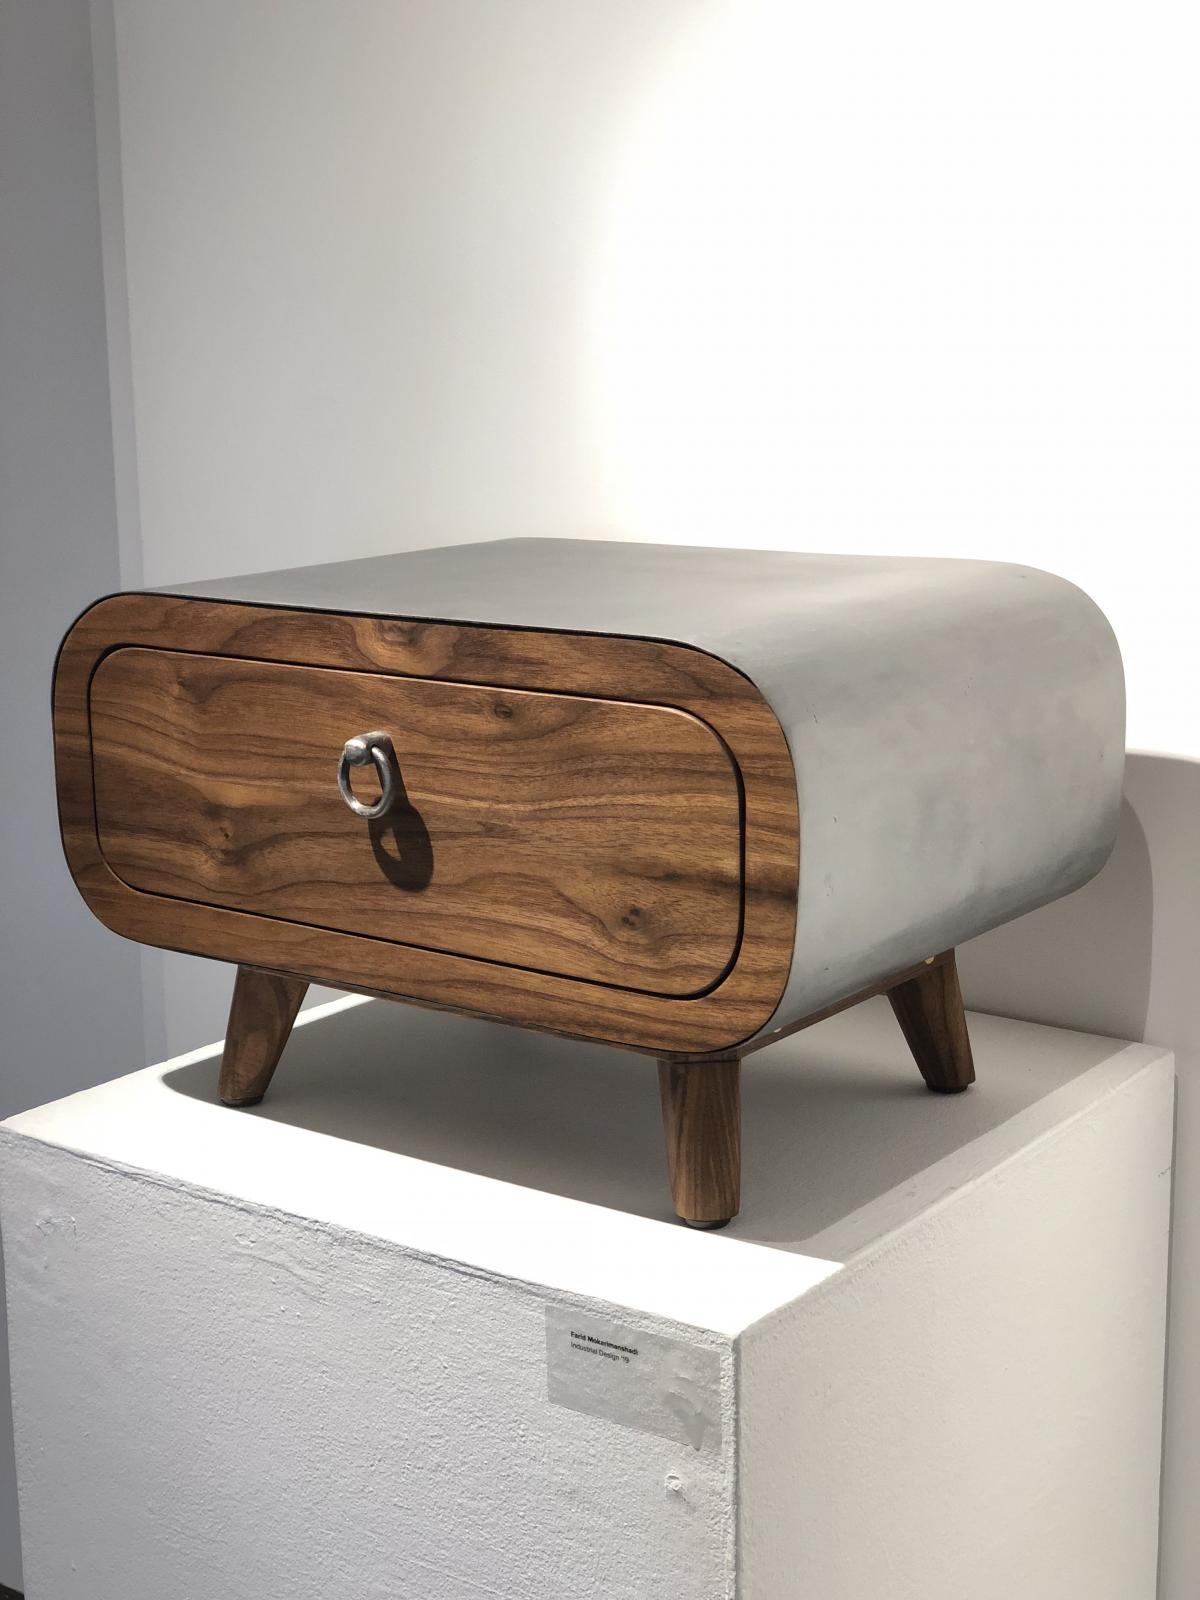 Sidebed Drawer by Farid Mokarimanshadi